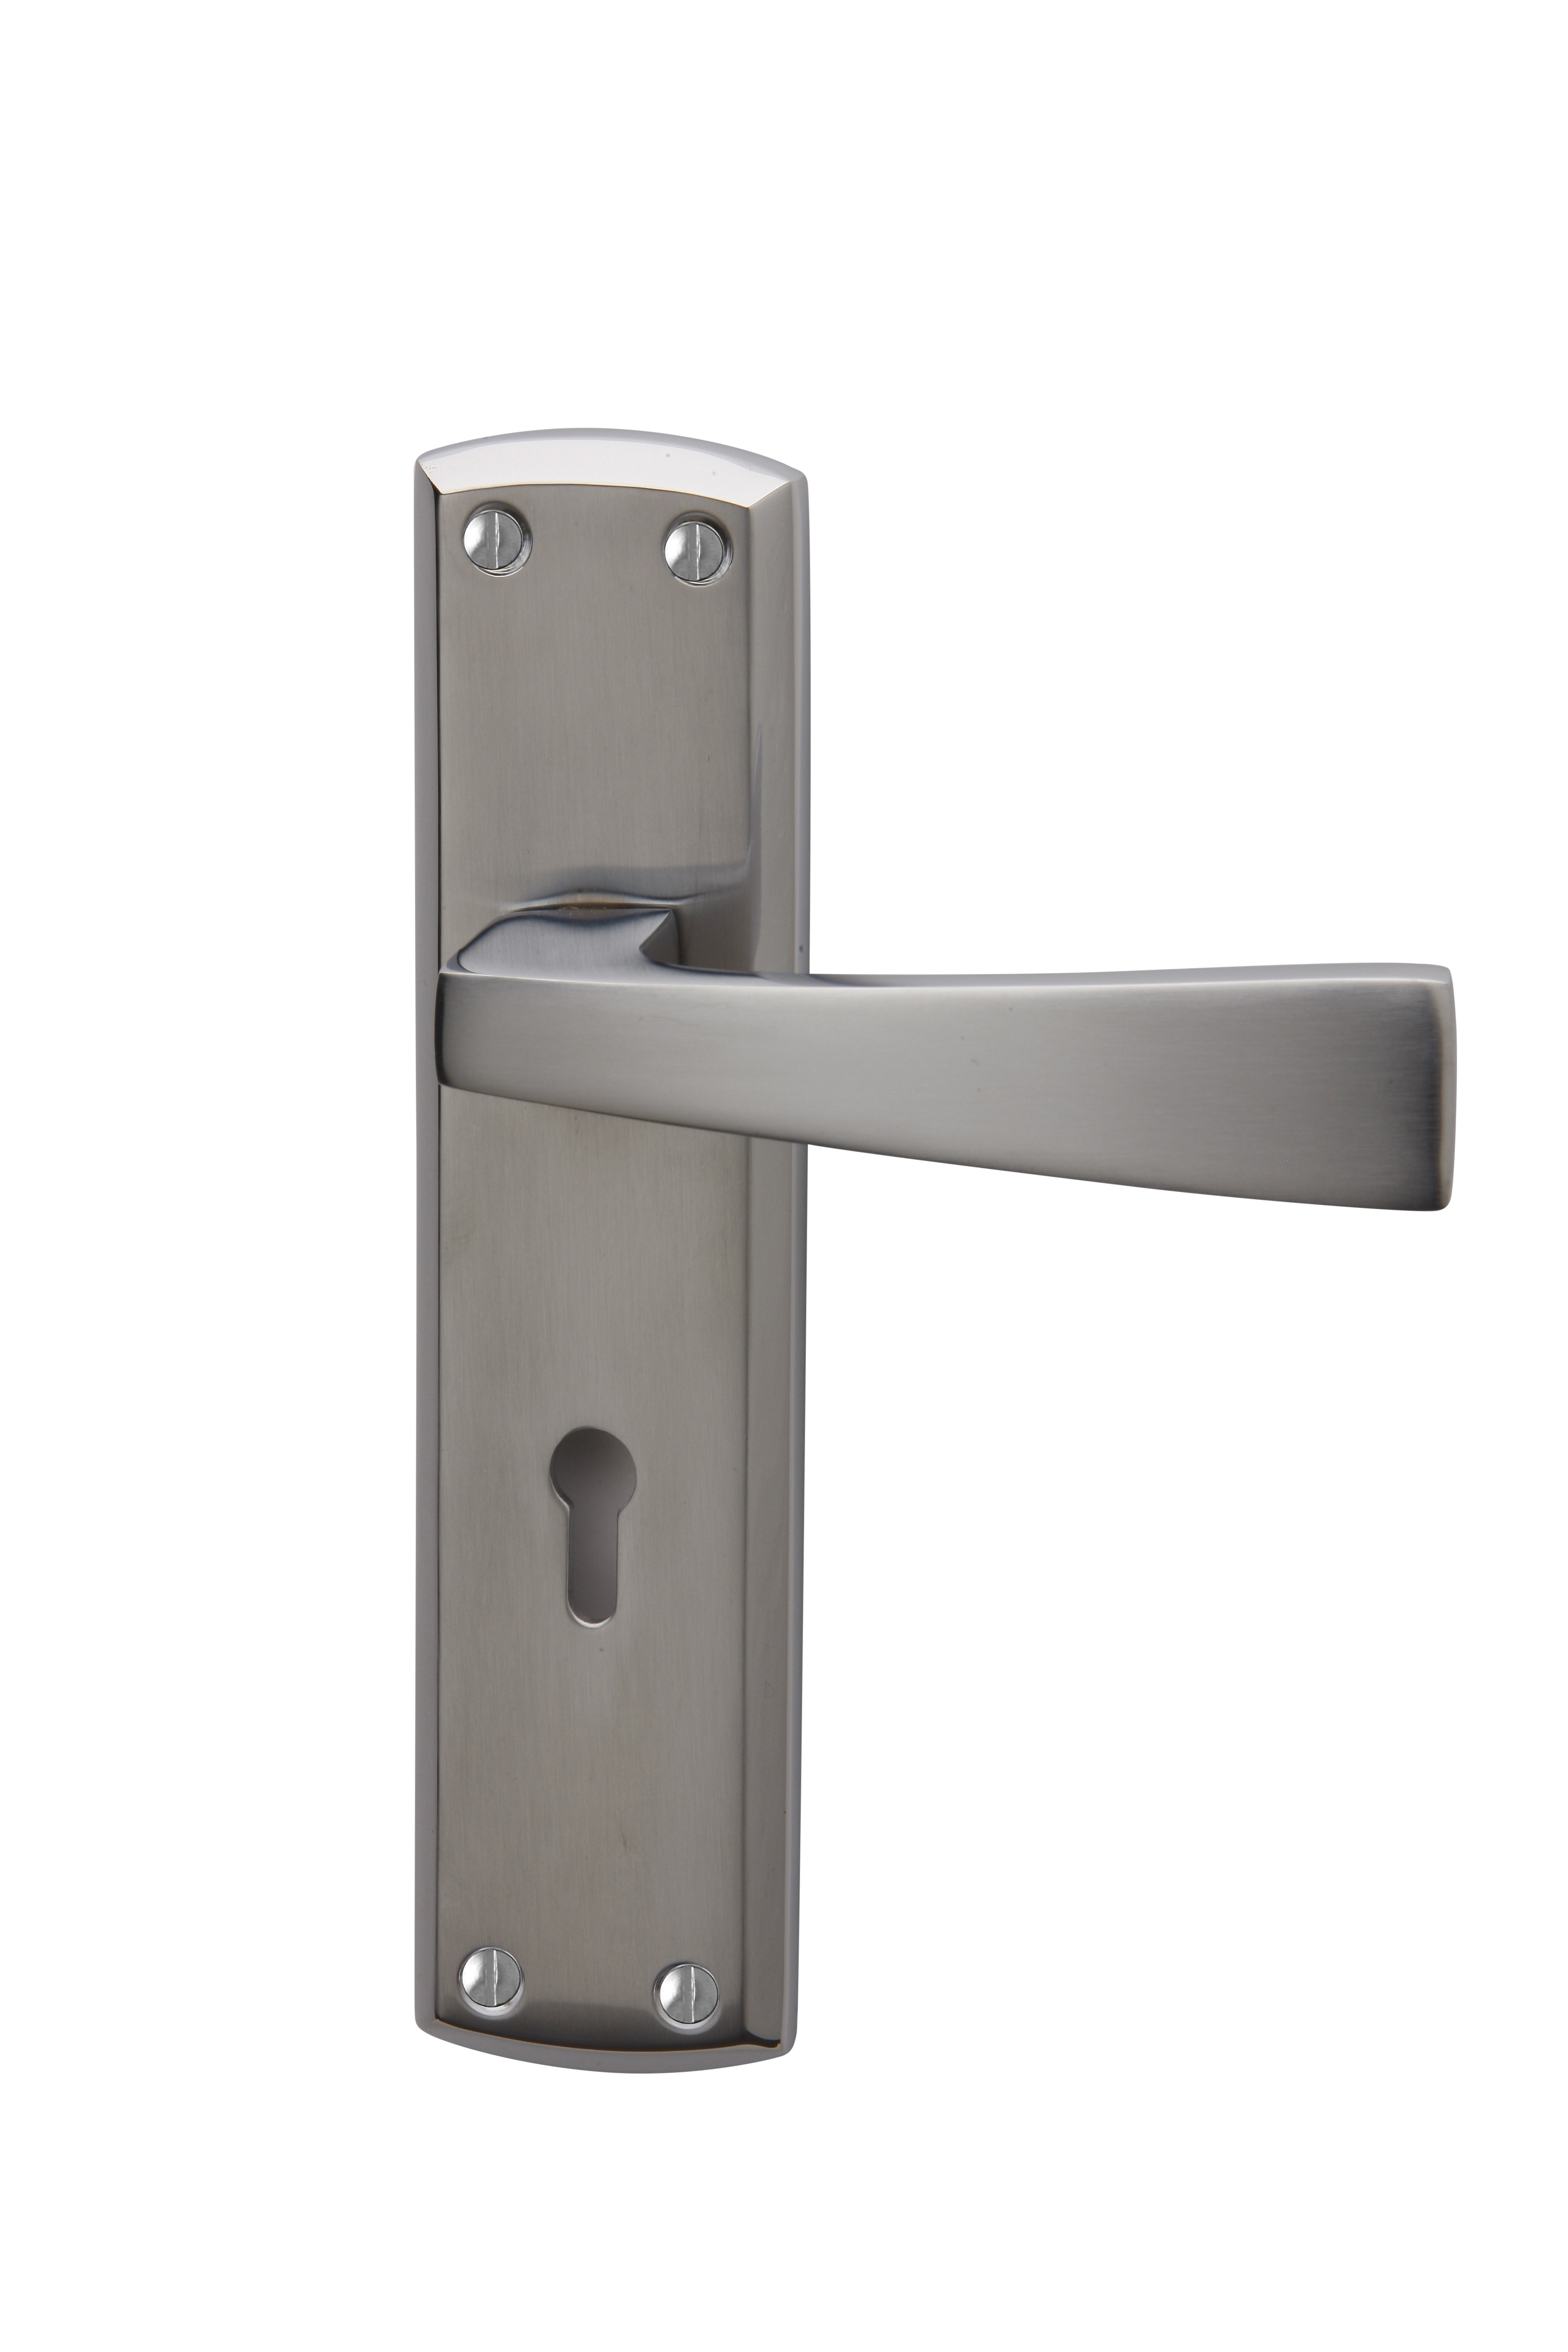 door to pictures steps with how step interior latch lock upvc wikihow change a